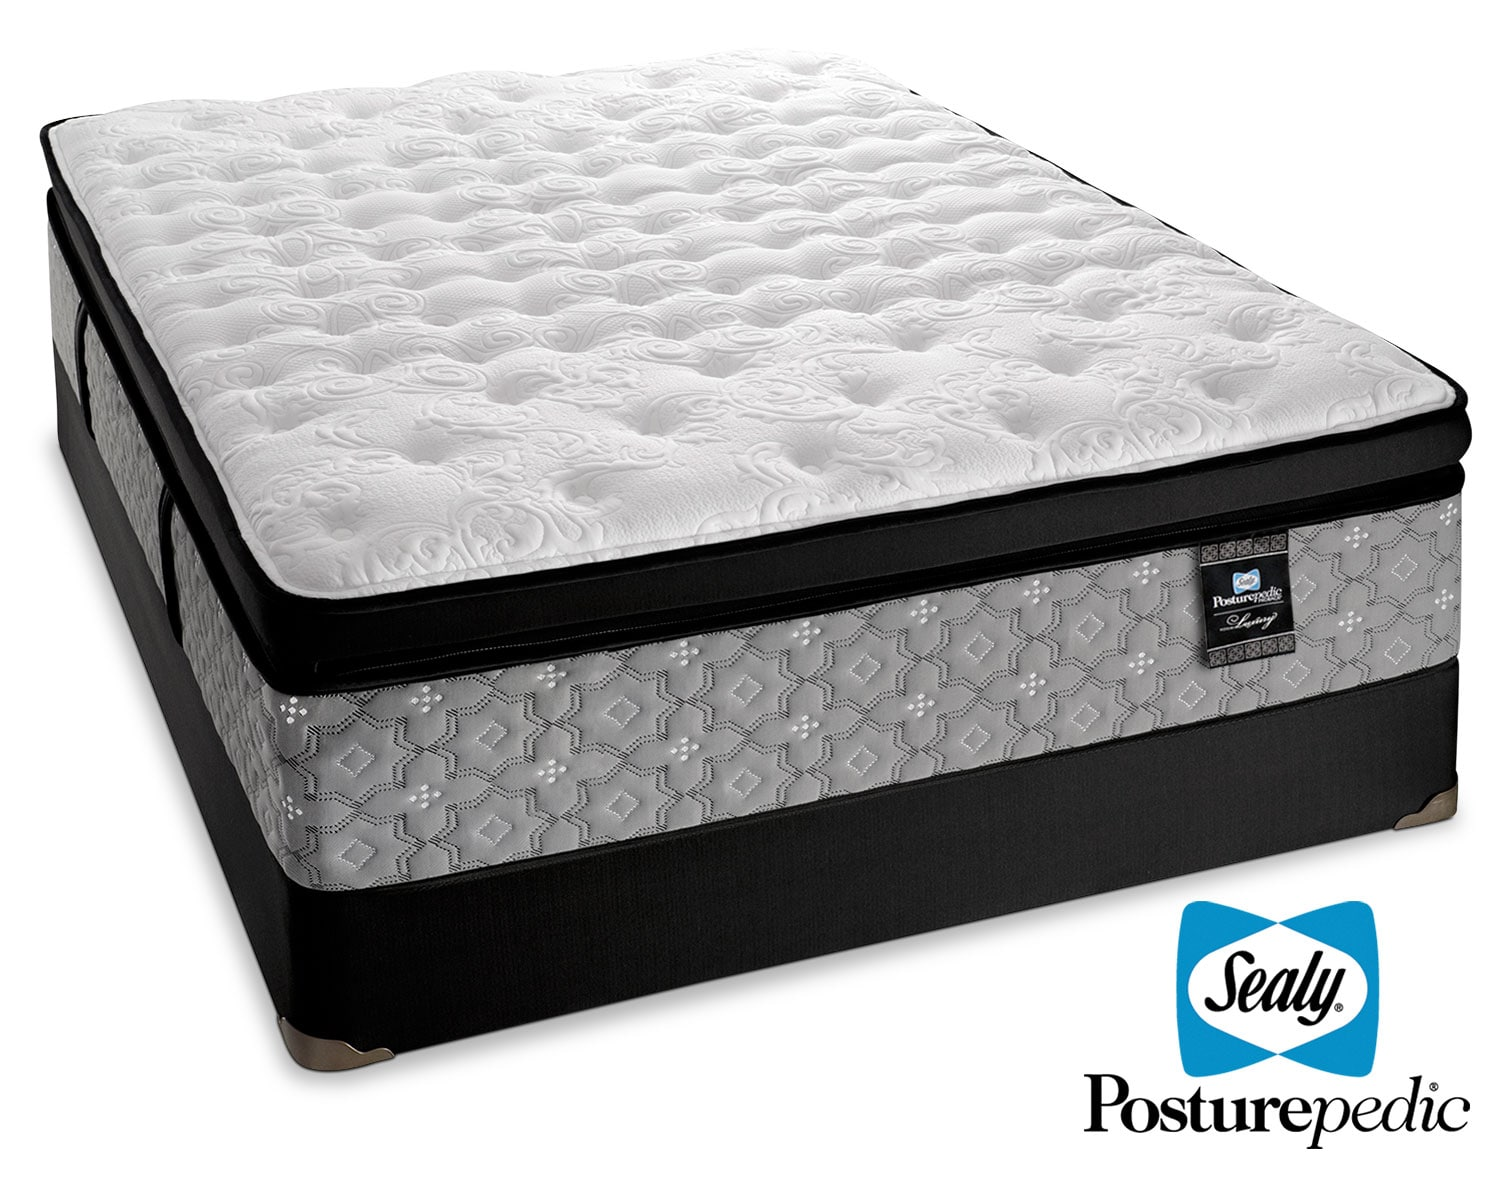 Mattresses and Bedding - Sealy Spartacus Plush Queen Mattress/Boxspring Set